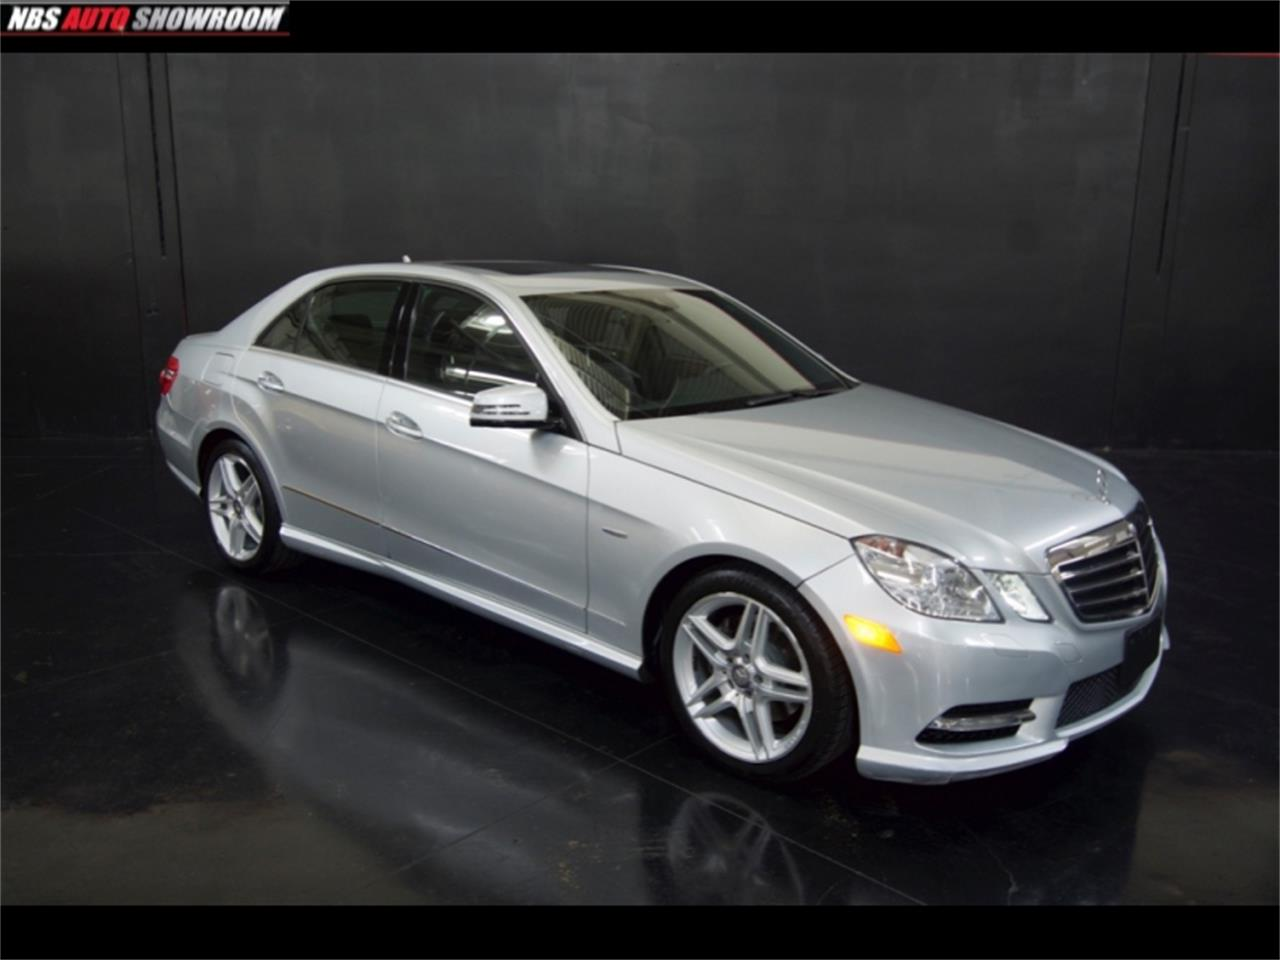 2012 Mercedes-Benz E-Class (CC-1270700) for sale in Milpitas, California